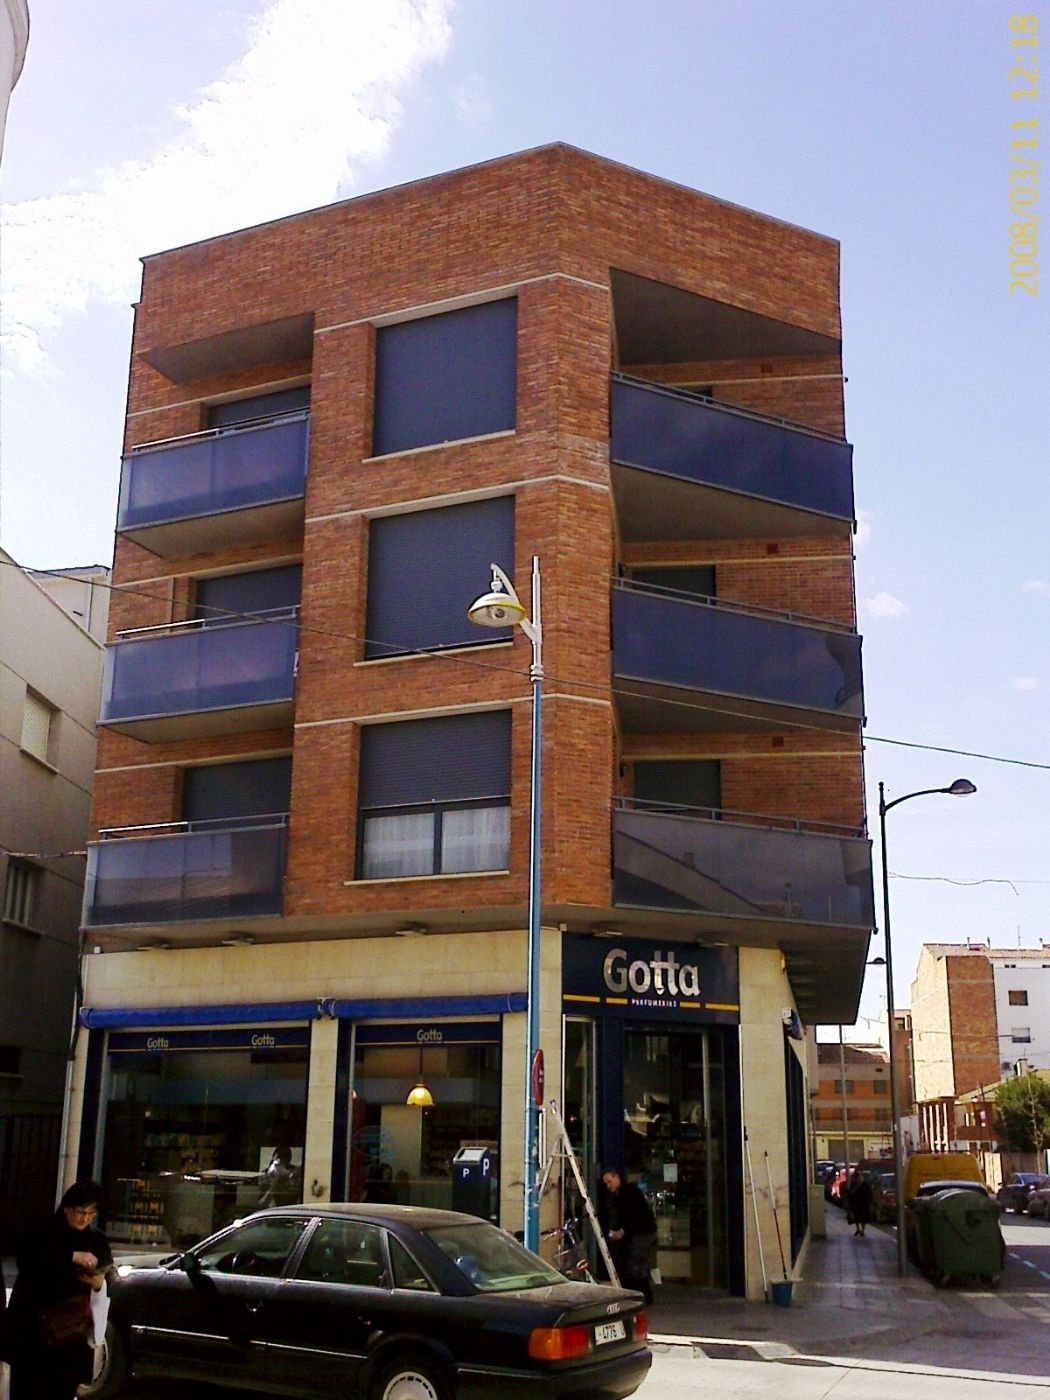 Appartamento in Carrer crist rei, 1. Venta piso 70m2 impecable 2 habitaciones